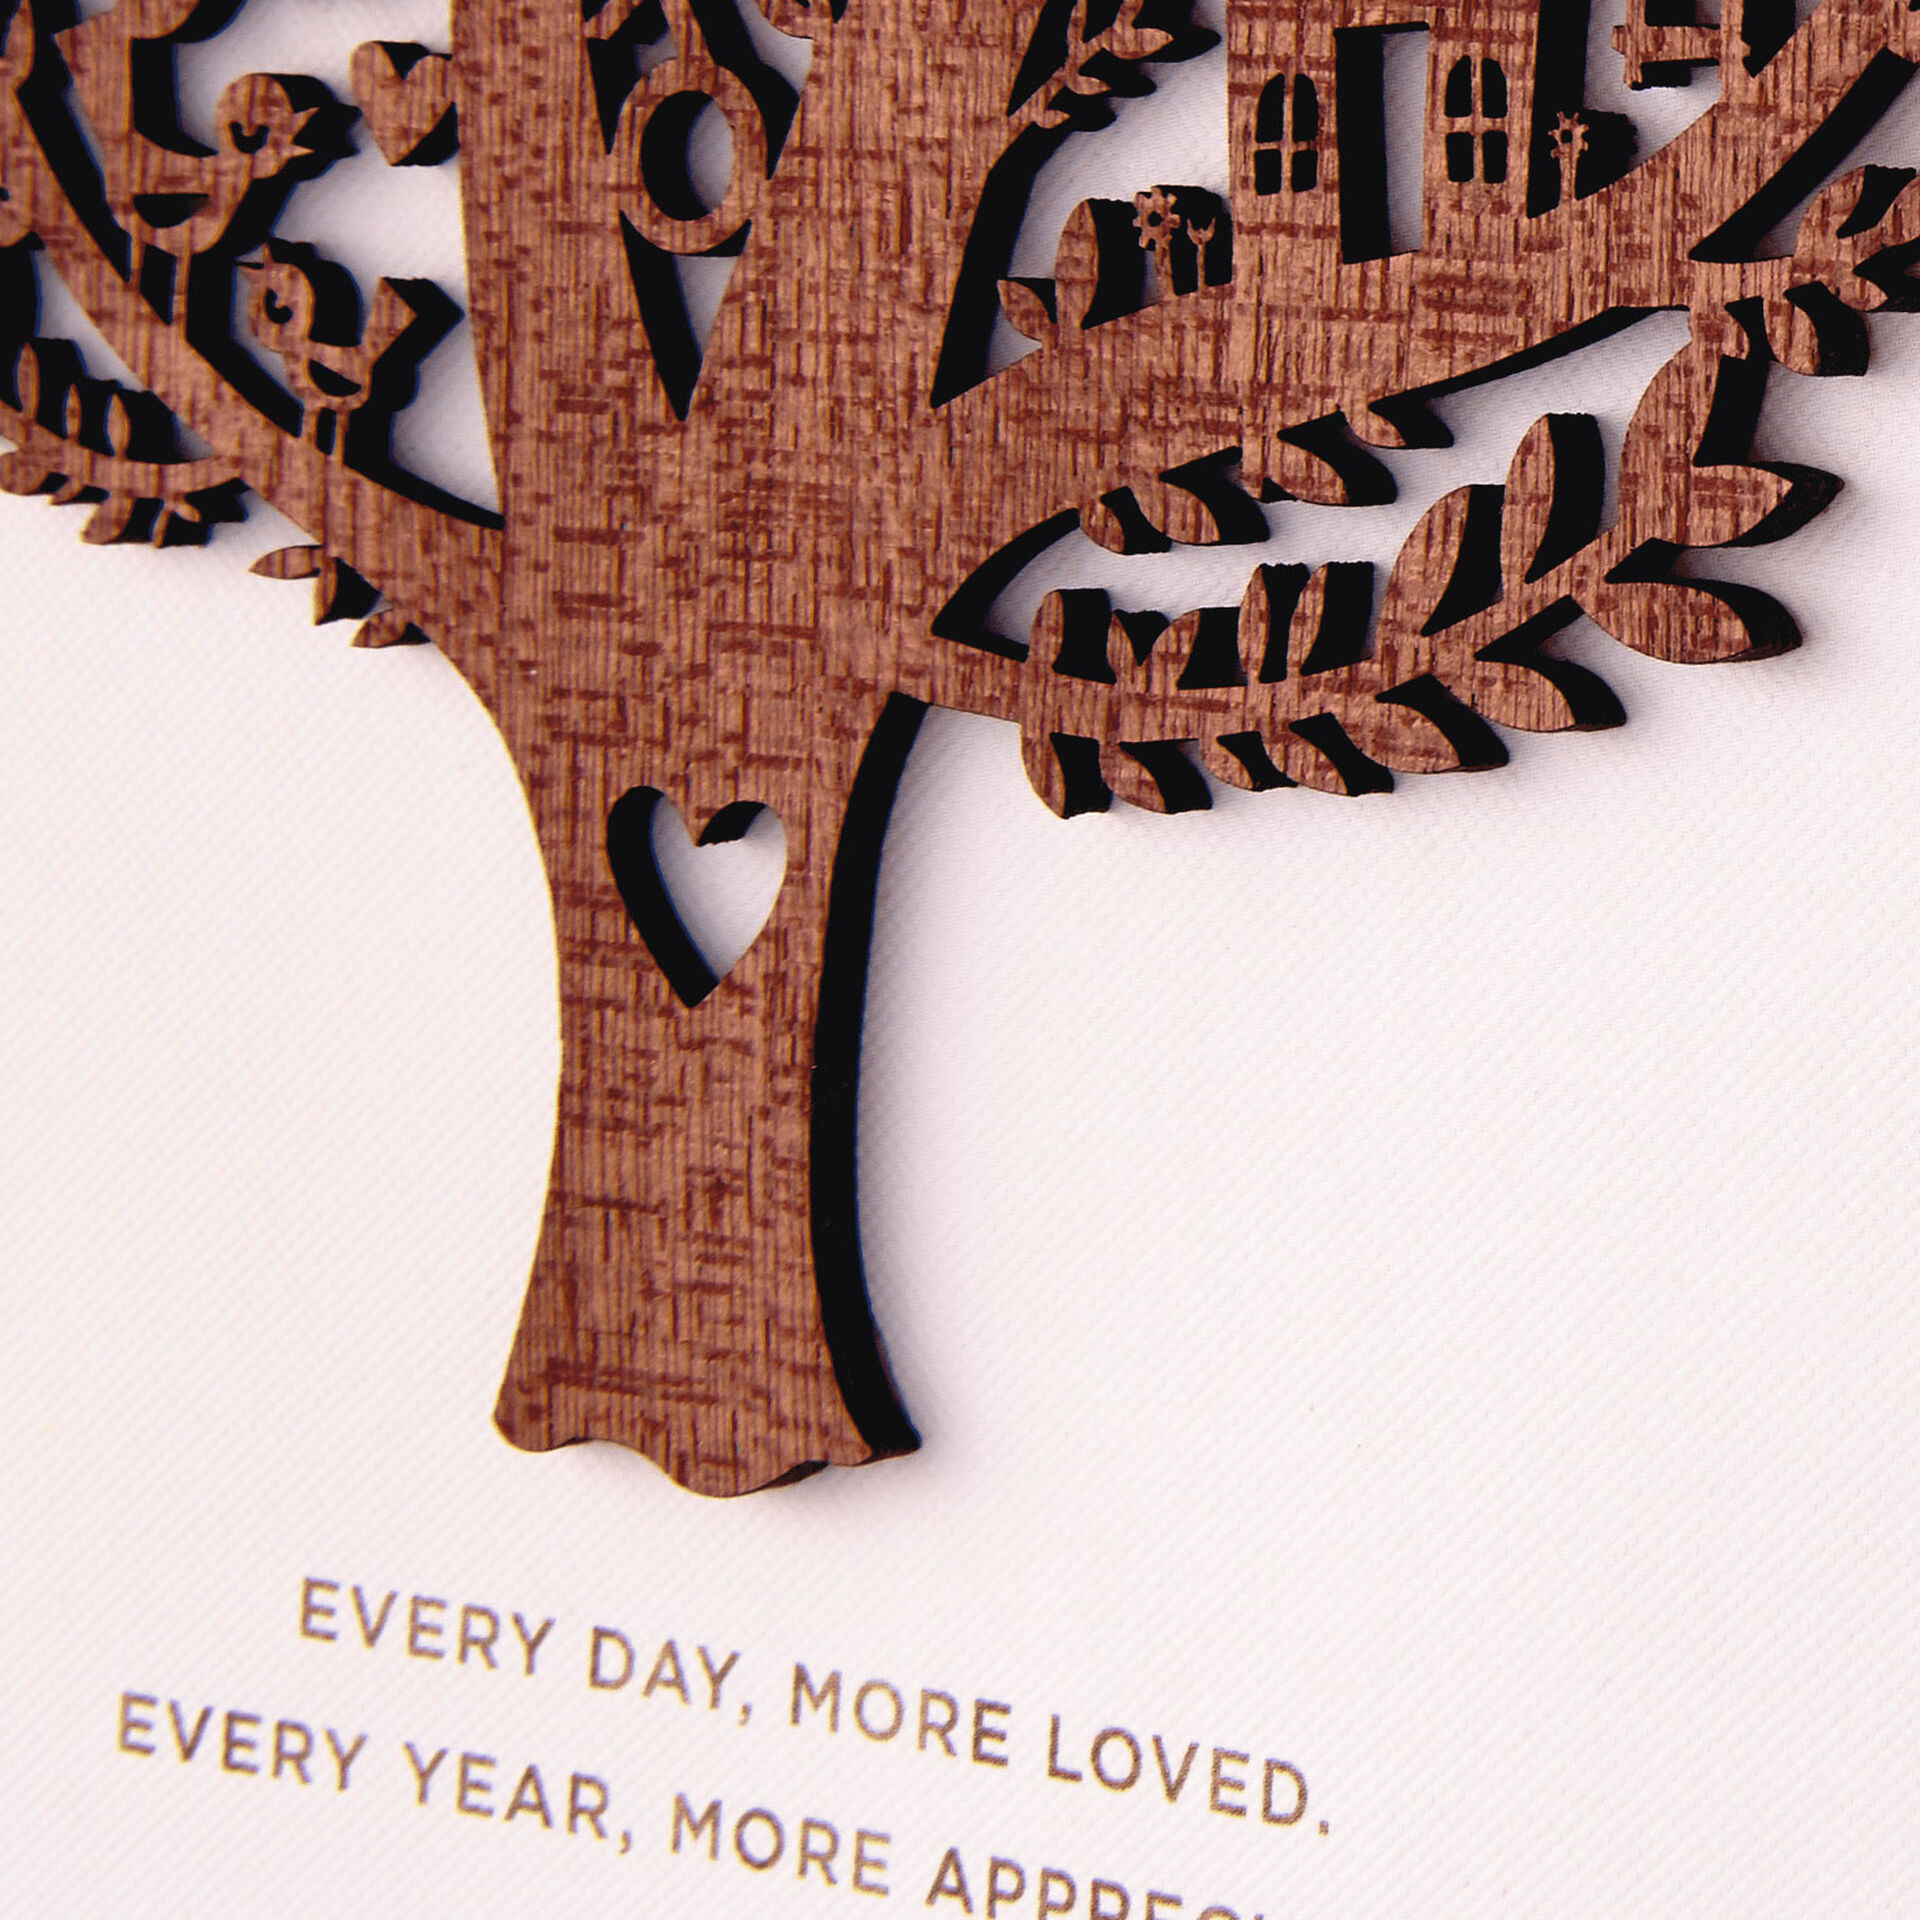 Loved and Appreciated Hallmark Mothers Day Card from All